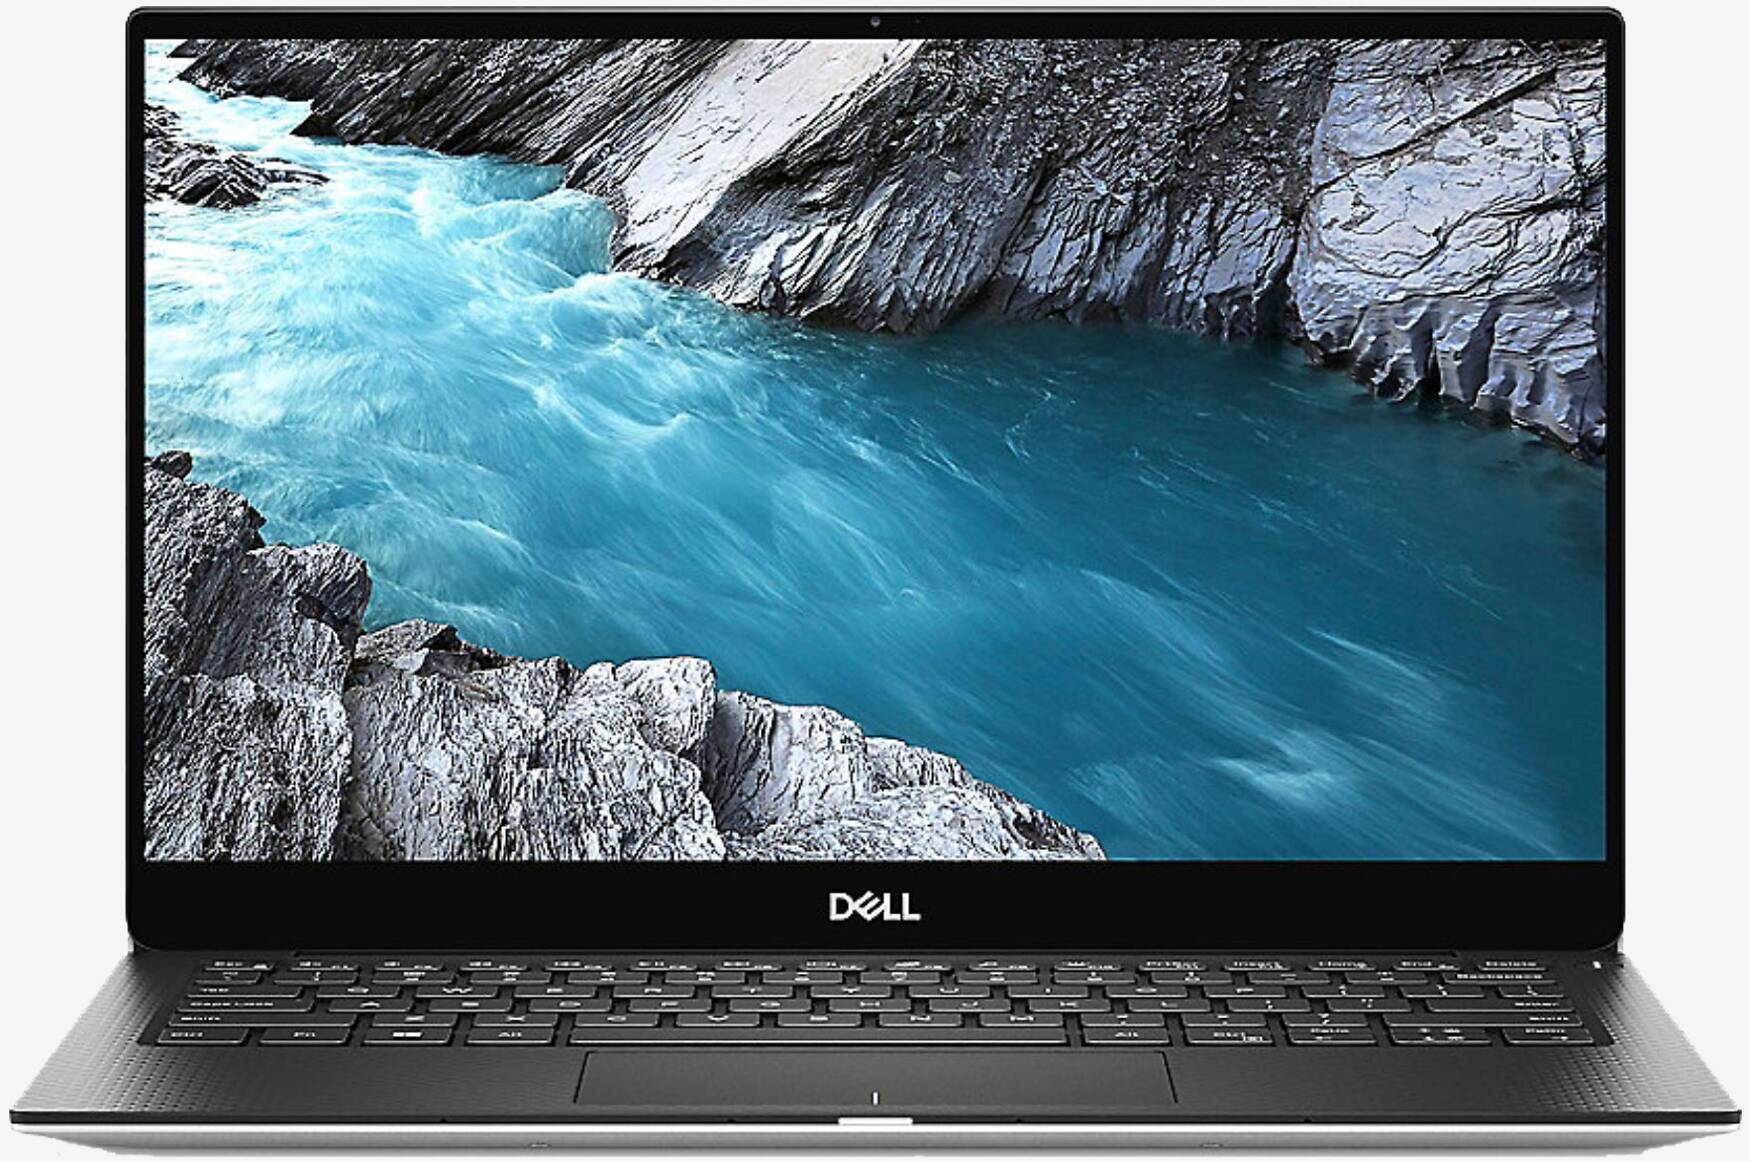 Dell XPS 13 (2019) 9380-HKW5V UHD Touch